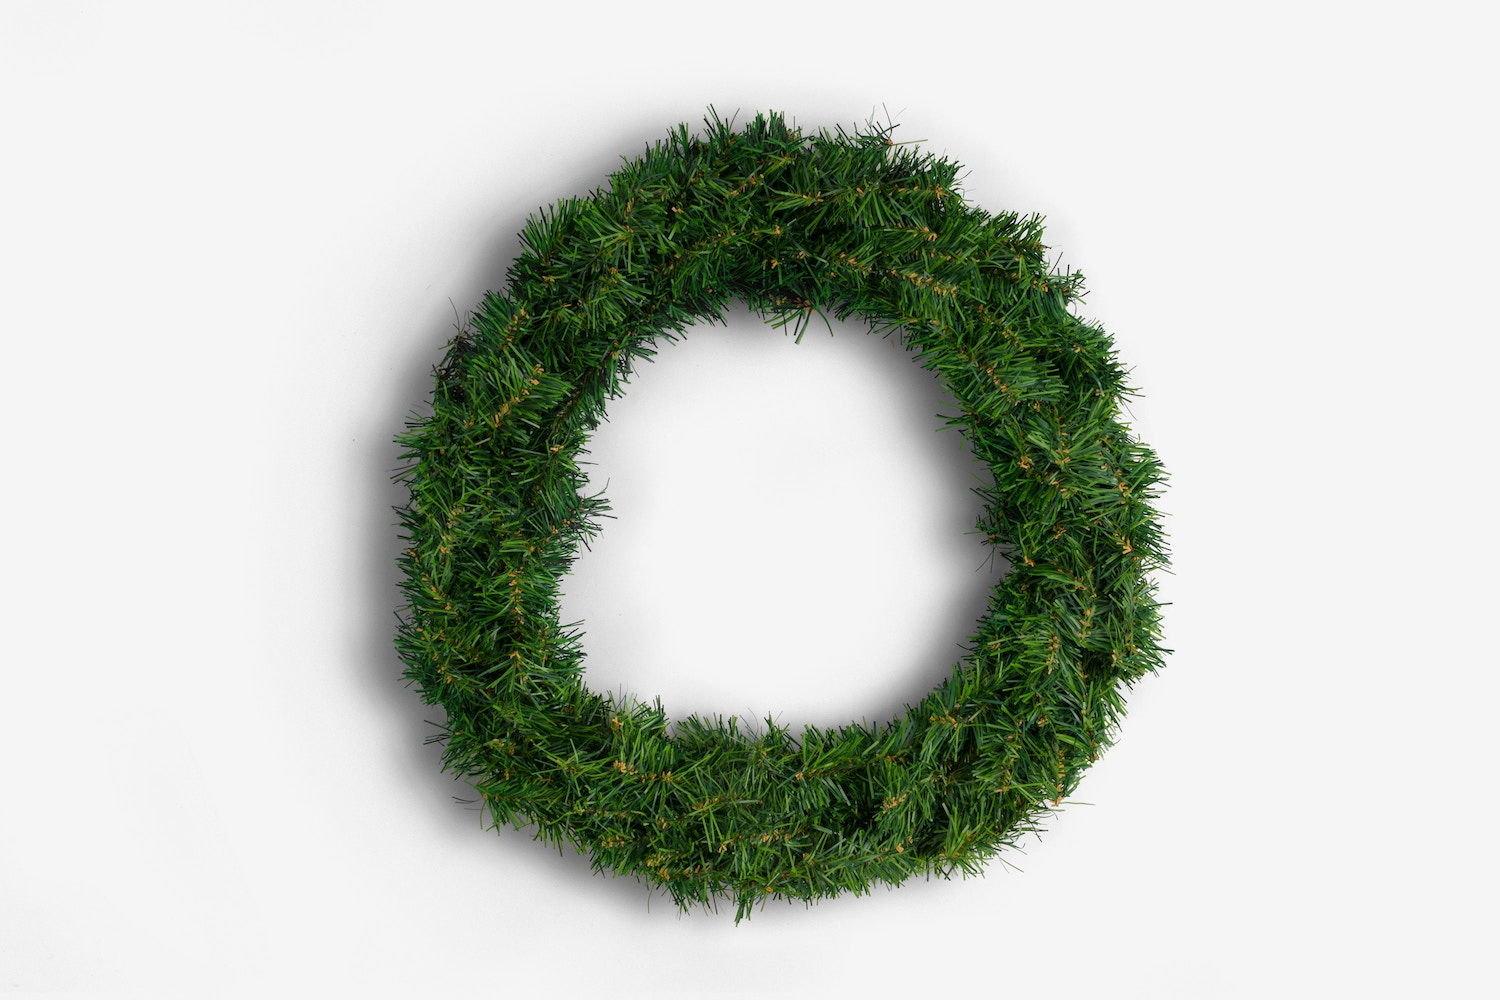 Christmas Wreath Isolate - Single by Original Mockups on Original Mockups